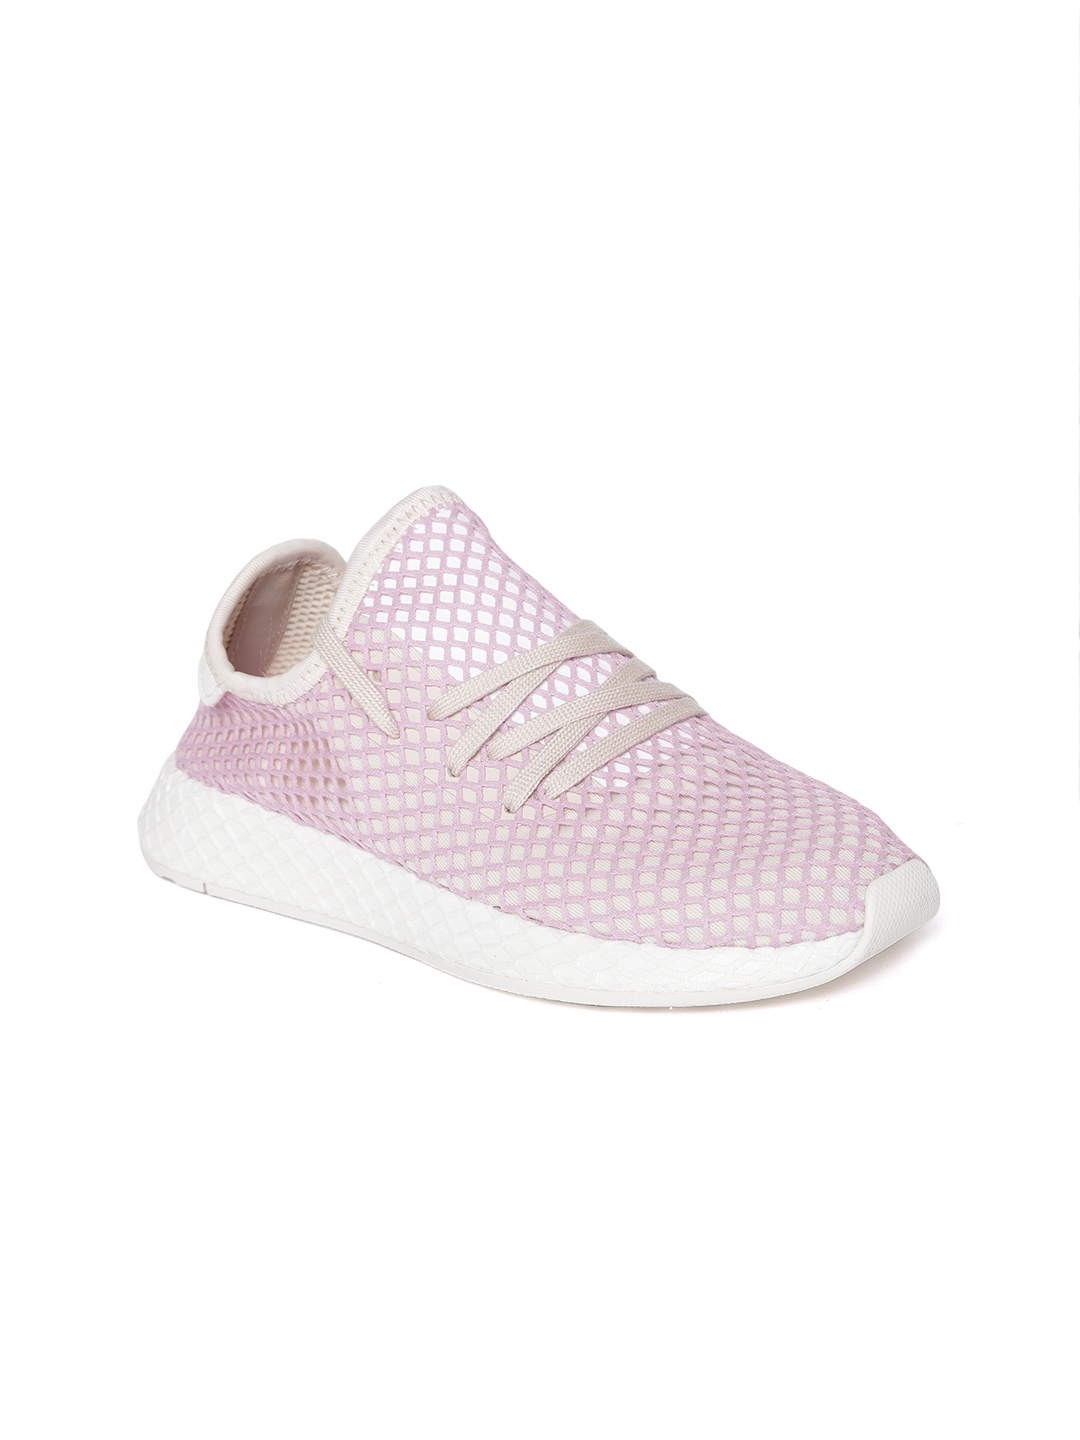 3313087e18965 Buy ADIDAS Originals Women Purple DEERUPT Casual Shoes - Casual ...